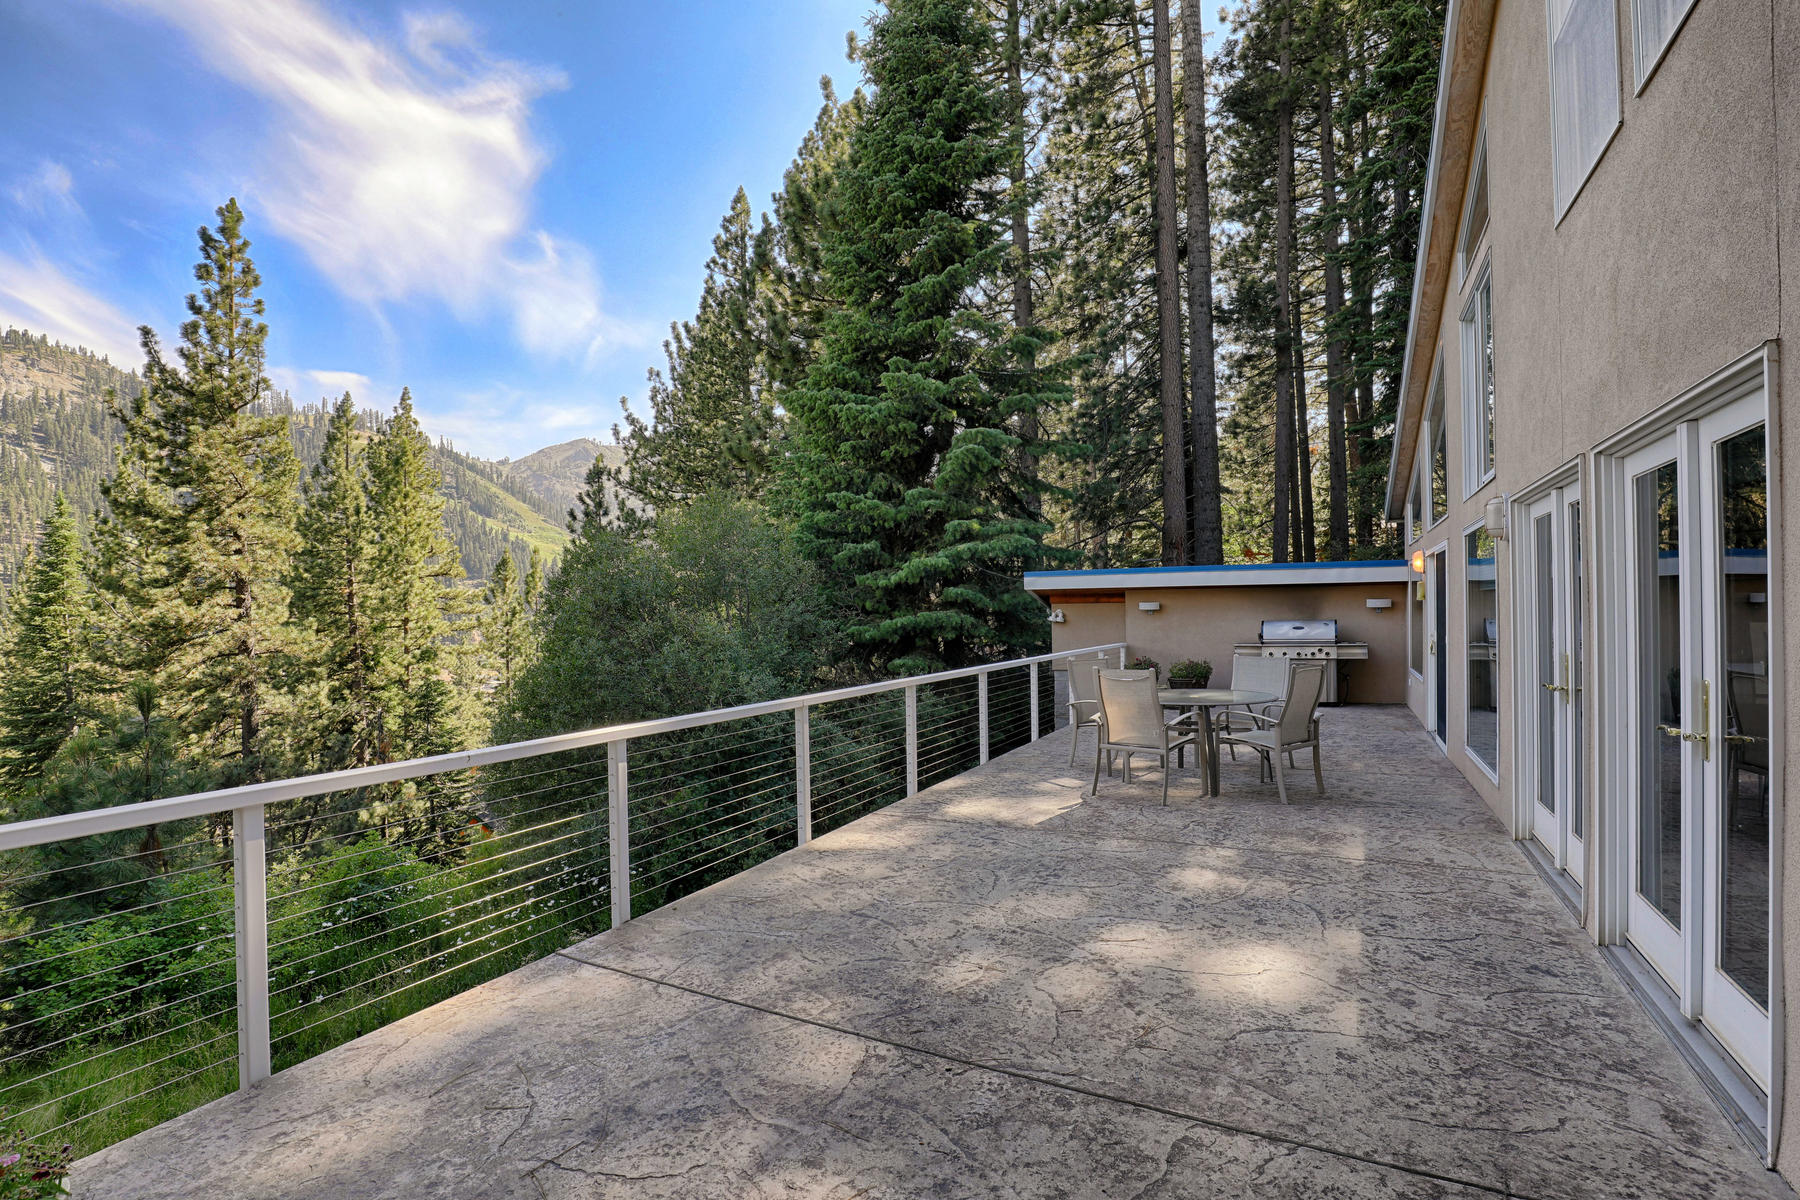 Additional photo for property listing at 1529 Sandy Way, Olympic Valley, CA 1529 Sandy Way Olympic Valley, California 96146 United States